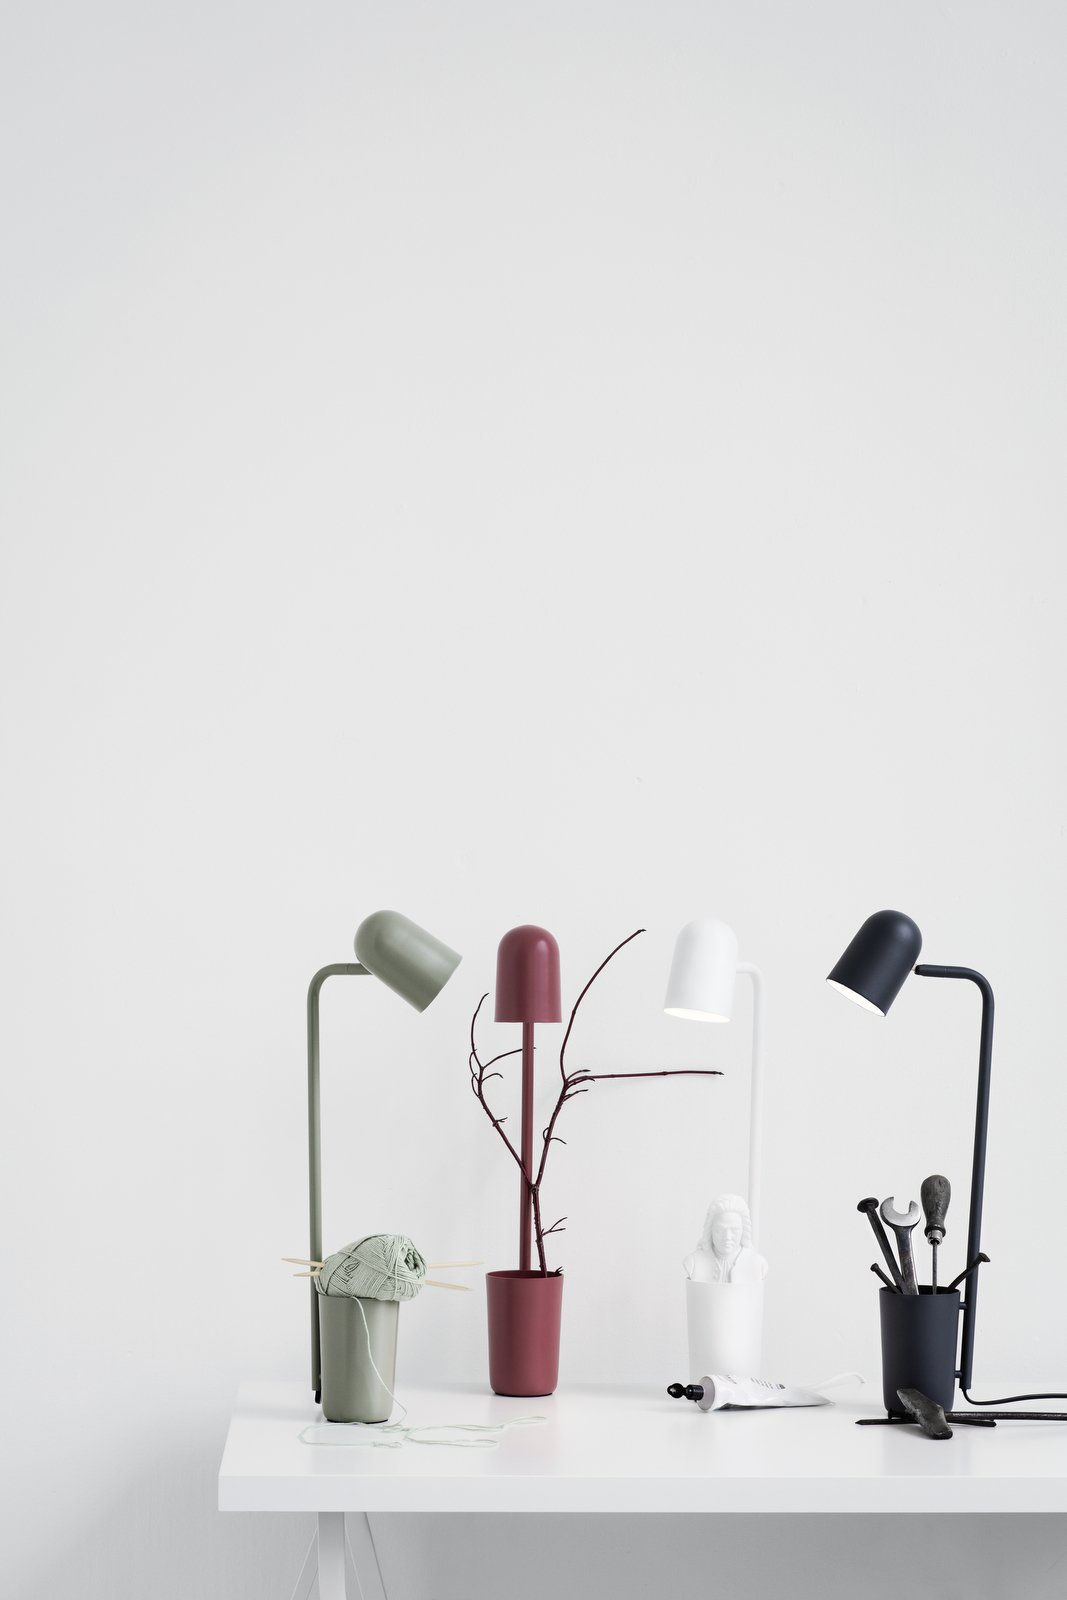 An unassuming little helper is how young Danish designer Mads Sætter-Lassen modestly describes his desk lamp, Buddy, designed for Northern Lighting. The multifunctional design includes a holder to keep pens, keys, and other small objects that are easily lost. The flexible shade, available in five matte colors, can be rotated in any direction.  Photo 9 of 10 in 10 First Steps to Follow When Planning the Perfect Lighting For Your Home from New Nordic Designs to Love from Stockholm Design Week 2016